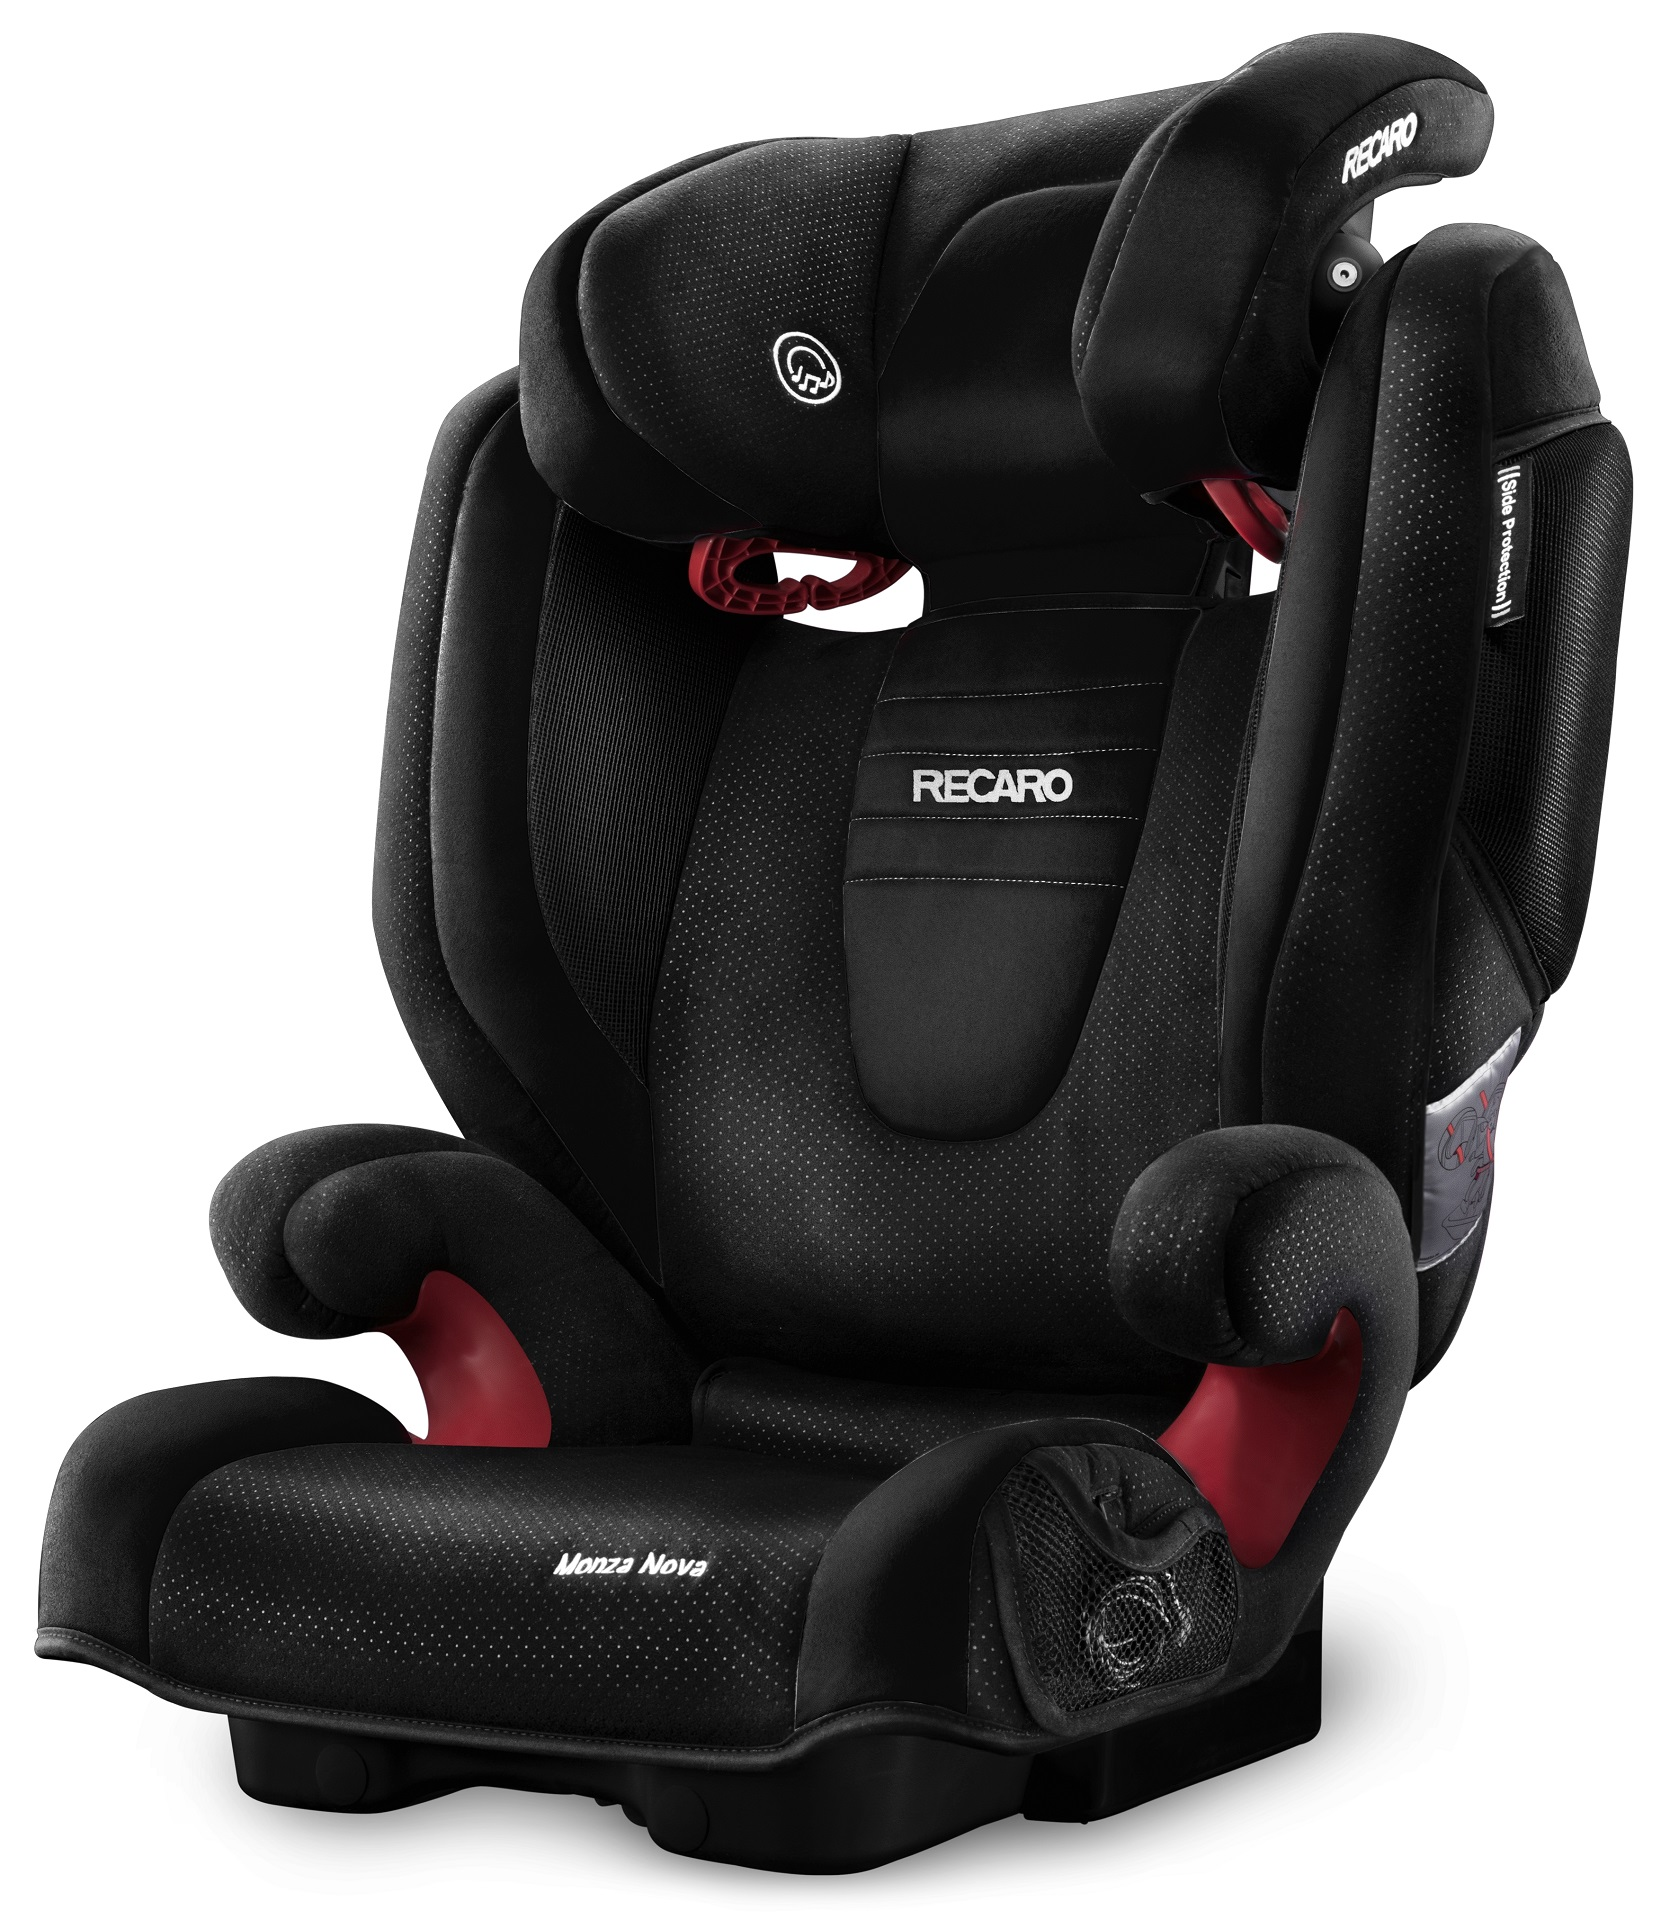 recaro kindersitz monza nova 2 online kaufen bei kidsroom. Black Bedroom Furniture Sets. Home Design Ideas